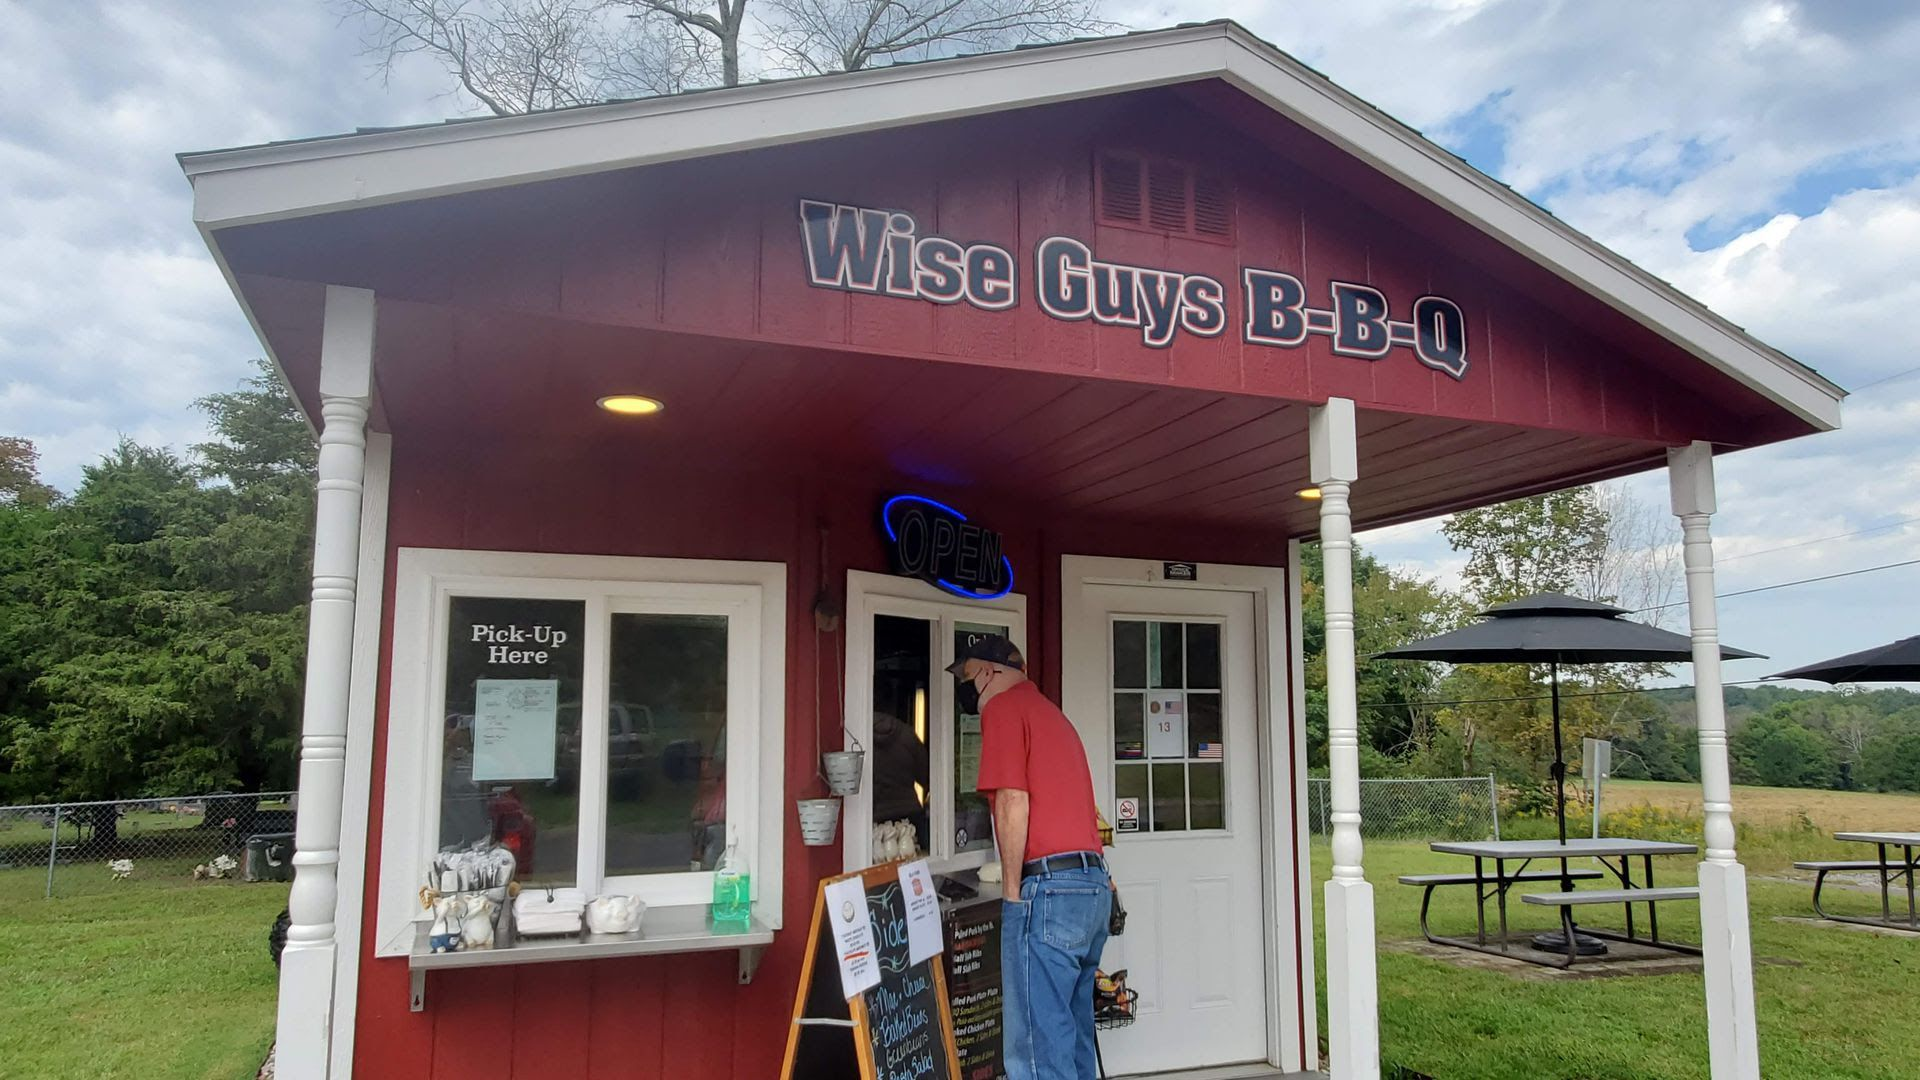 A man orders outside of Wise Guy's barbecue in Joelton.